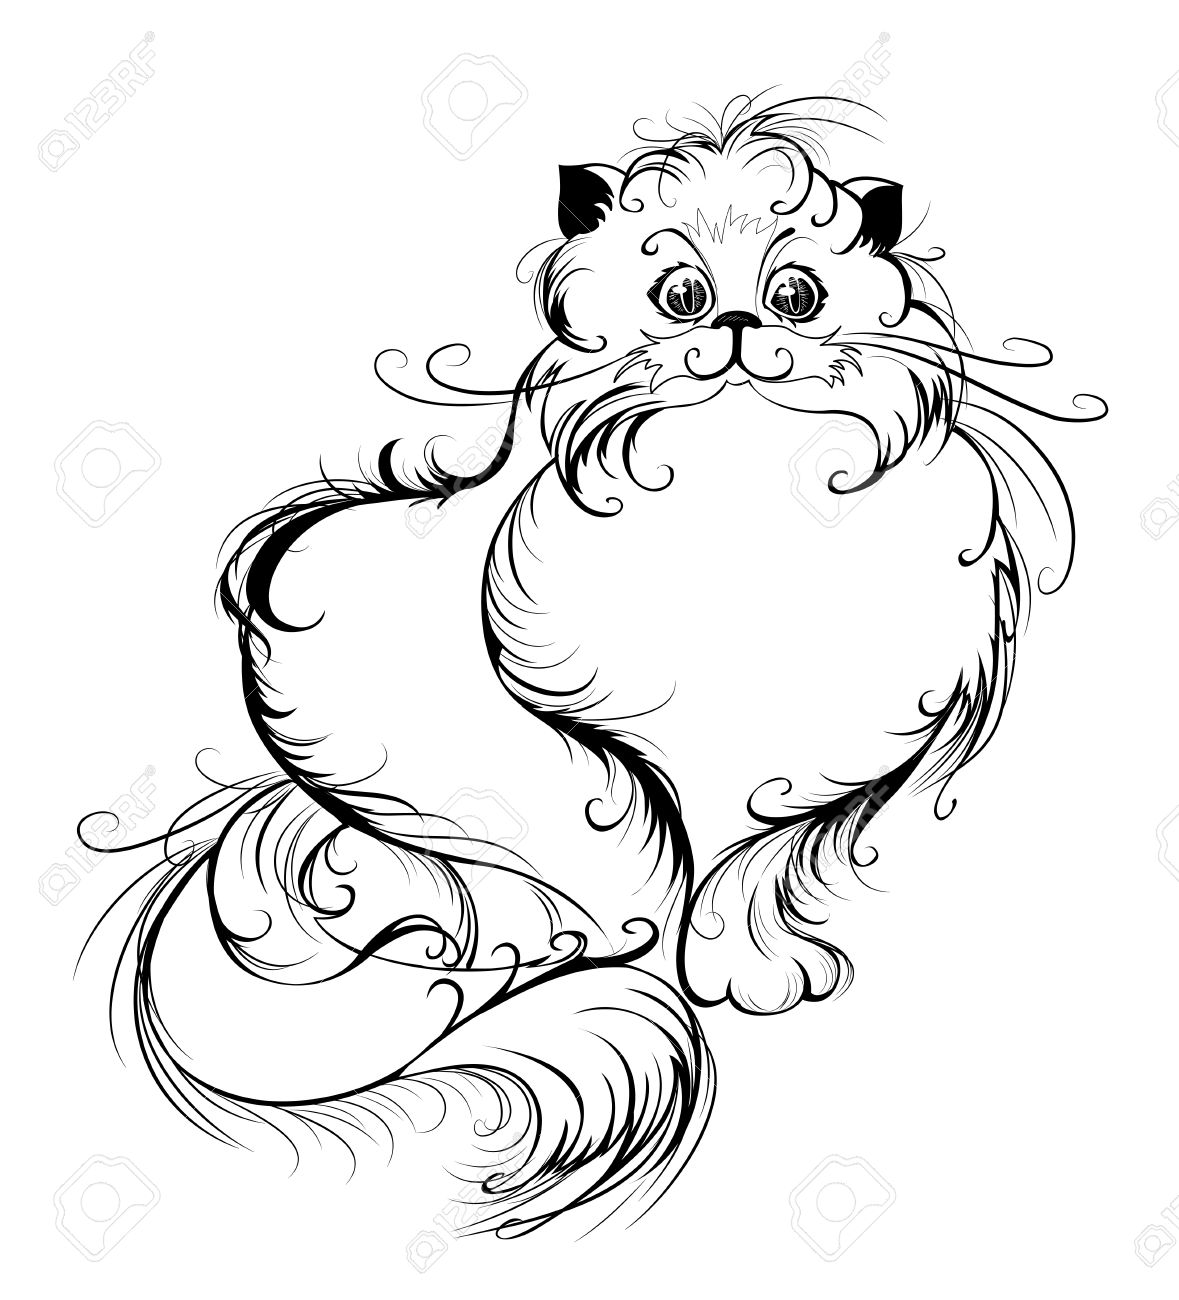 1179x1300 Artistically Drawn, Thin Black Lines Smooth, Fluffy Persian Cat